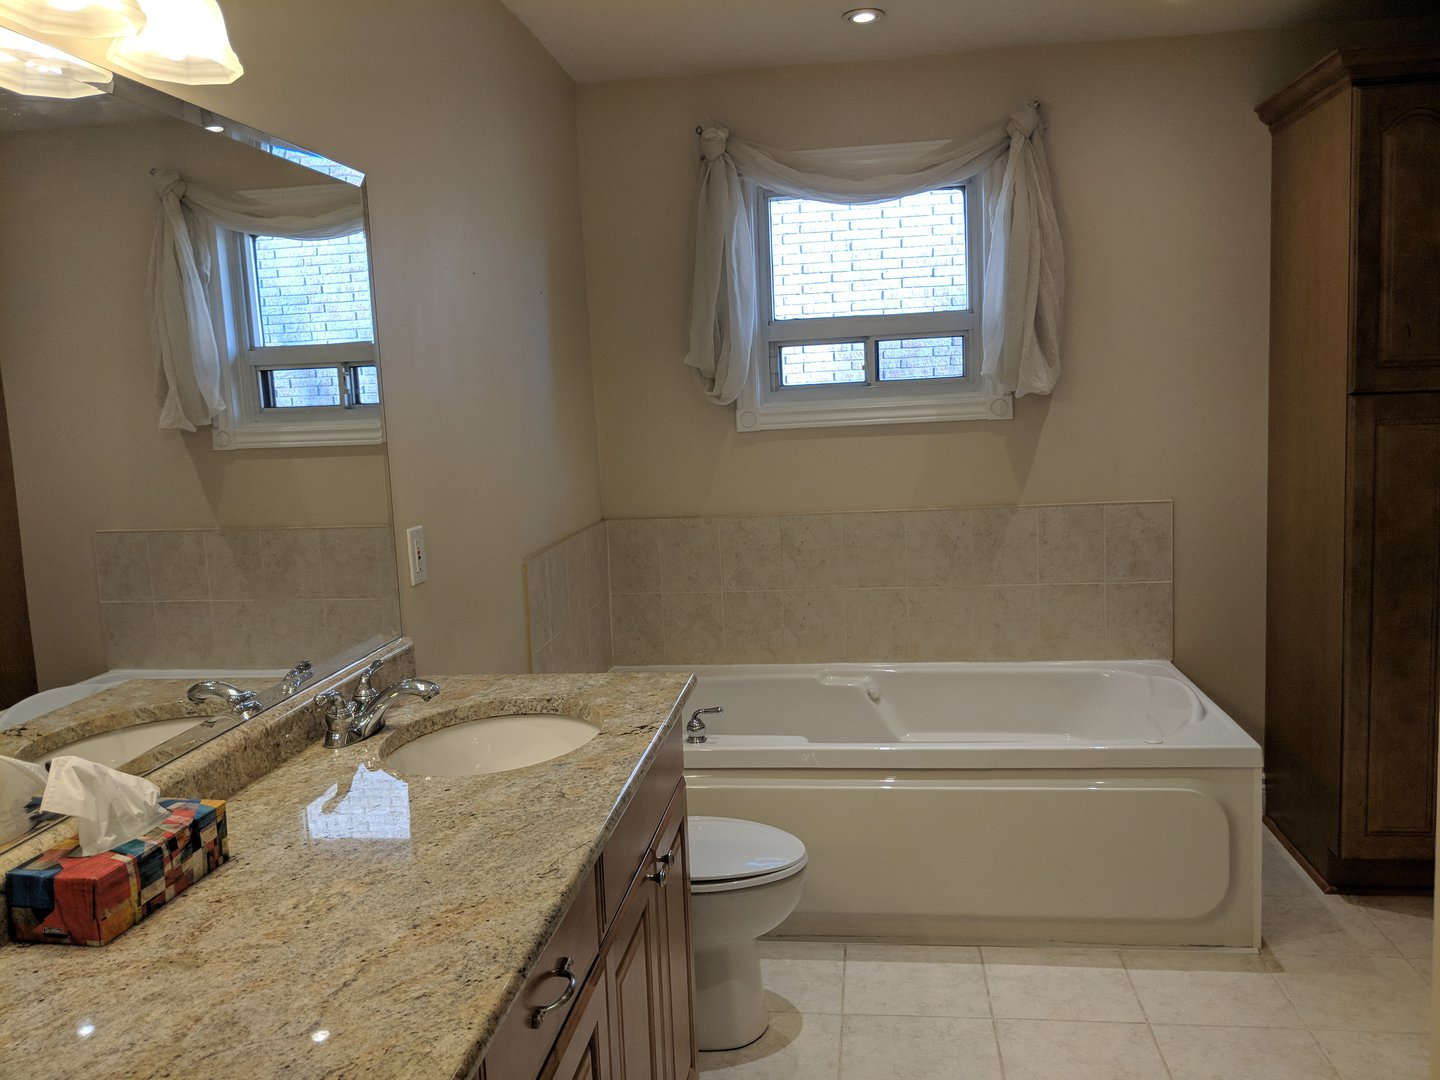 House for rent at 1162 Kipling Ave | Unit: upper, Etobicoke, ON. This is the bathroom with vaulted ceiling, tile floor and natural light.